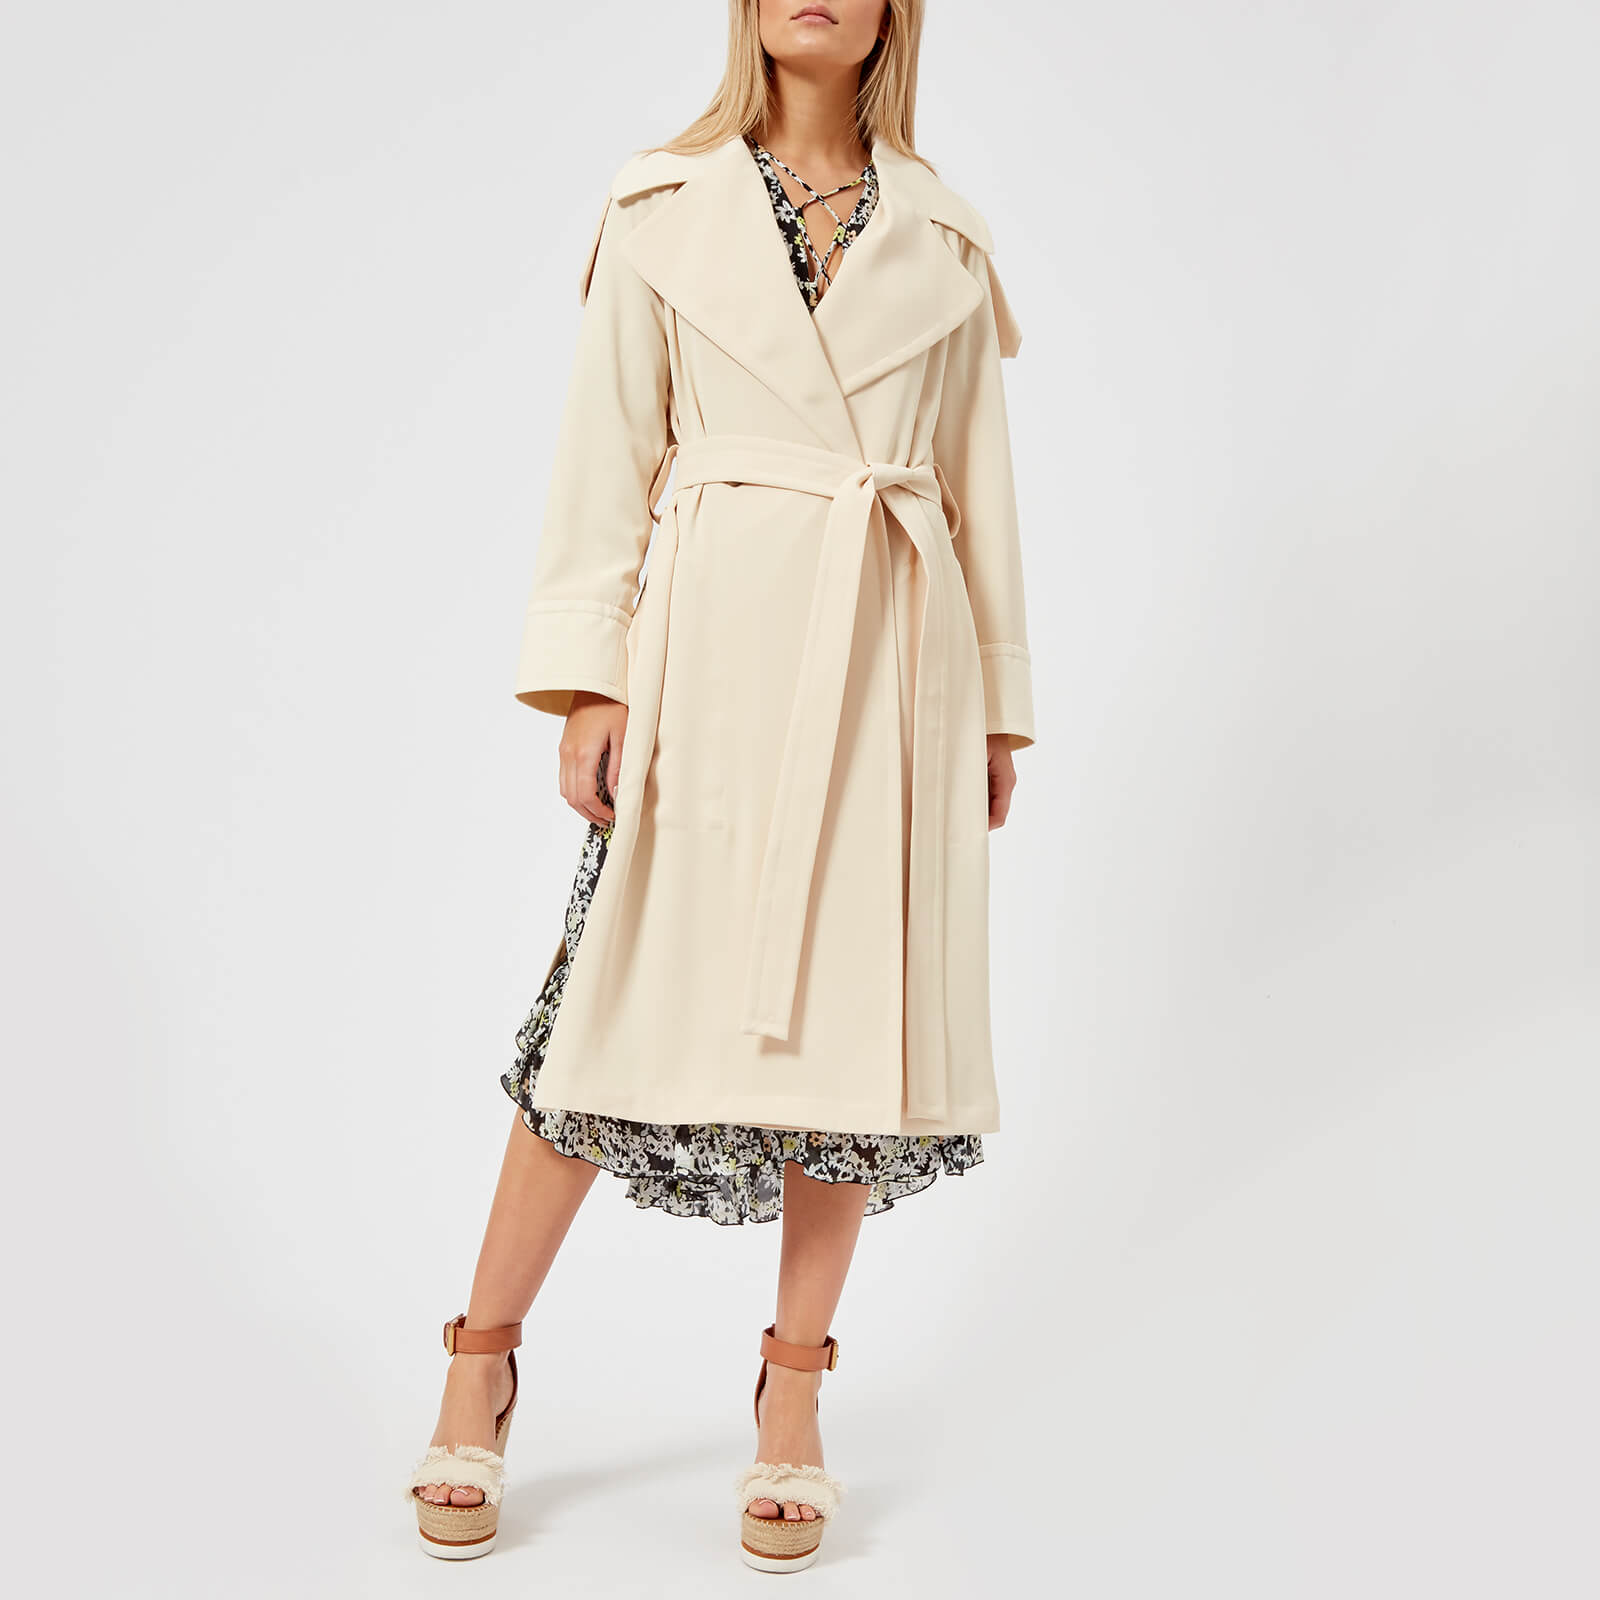 9315c70a8f See By Chloé Women's Long Trench Coat Style Jacket - Angora Beige